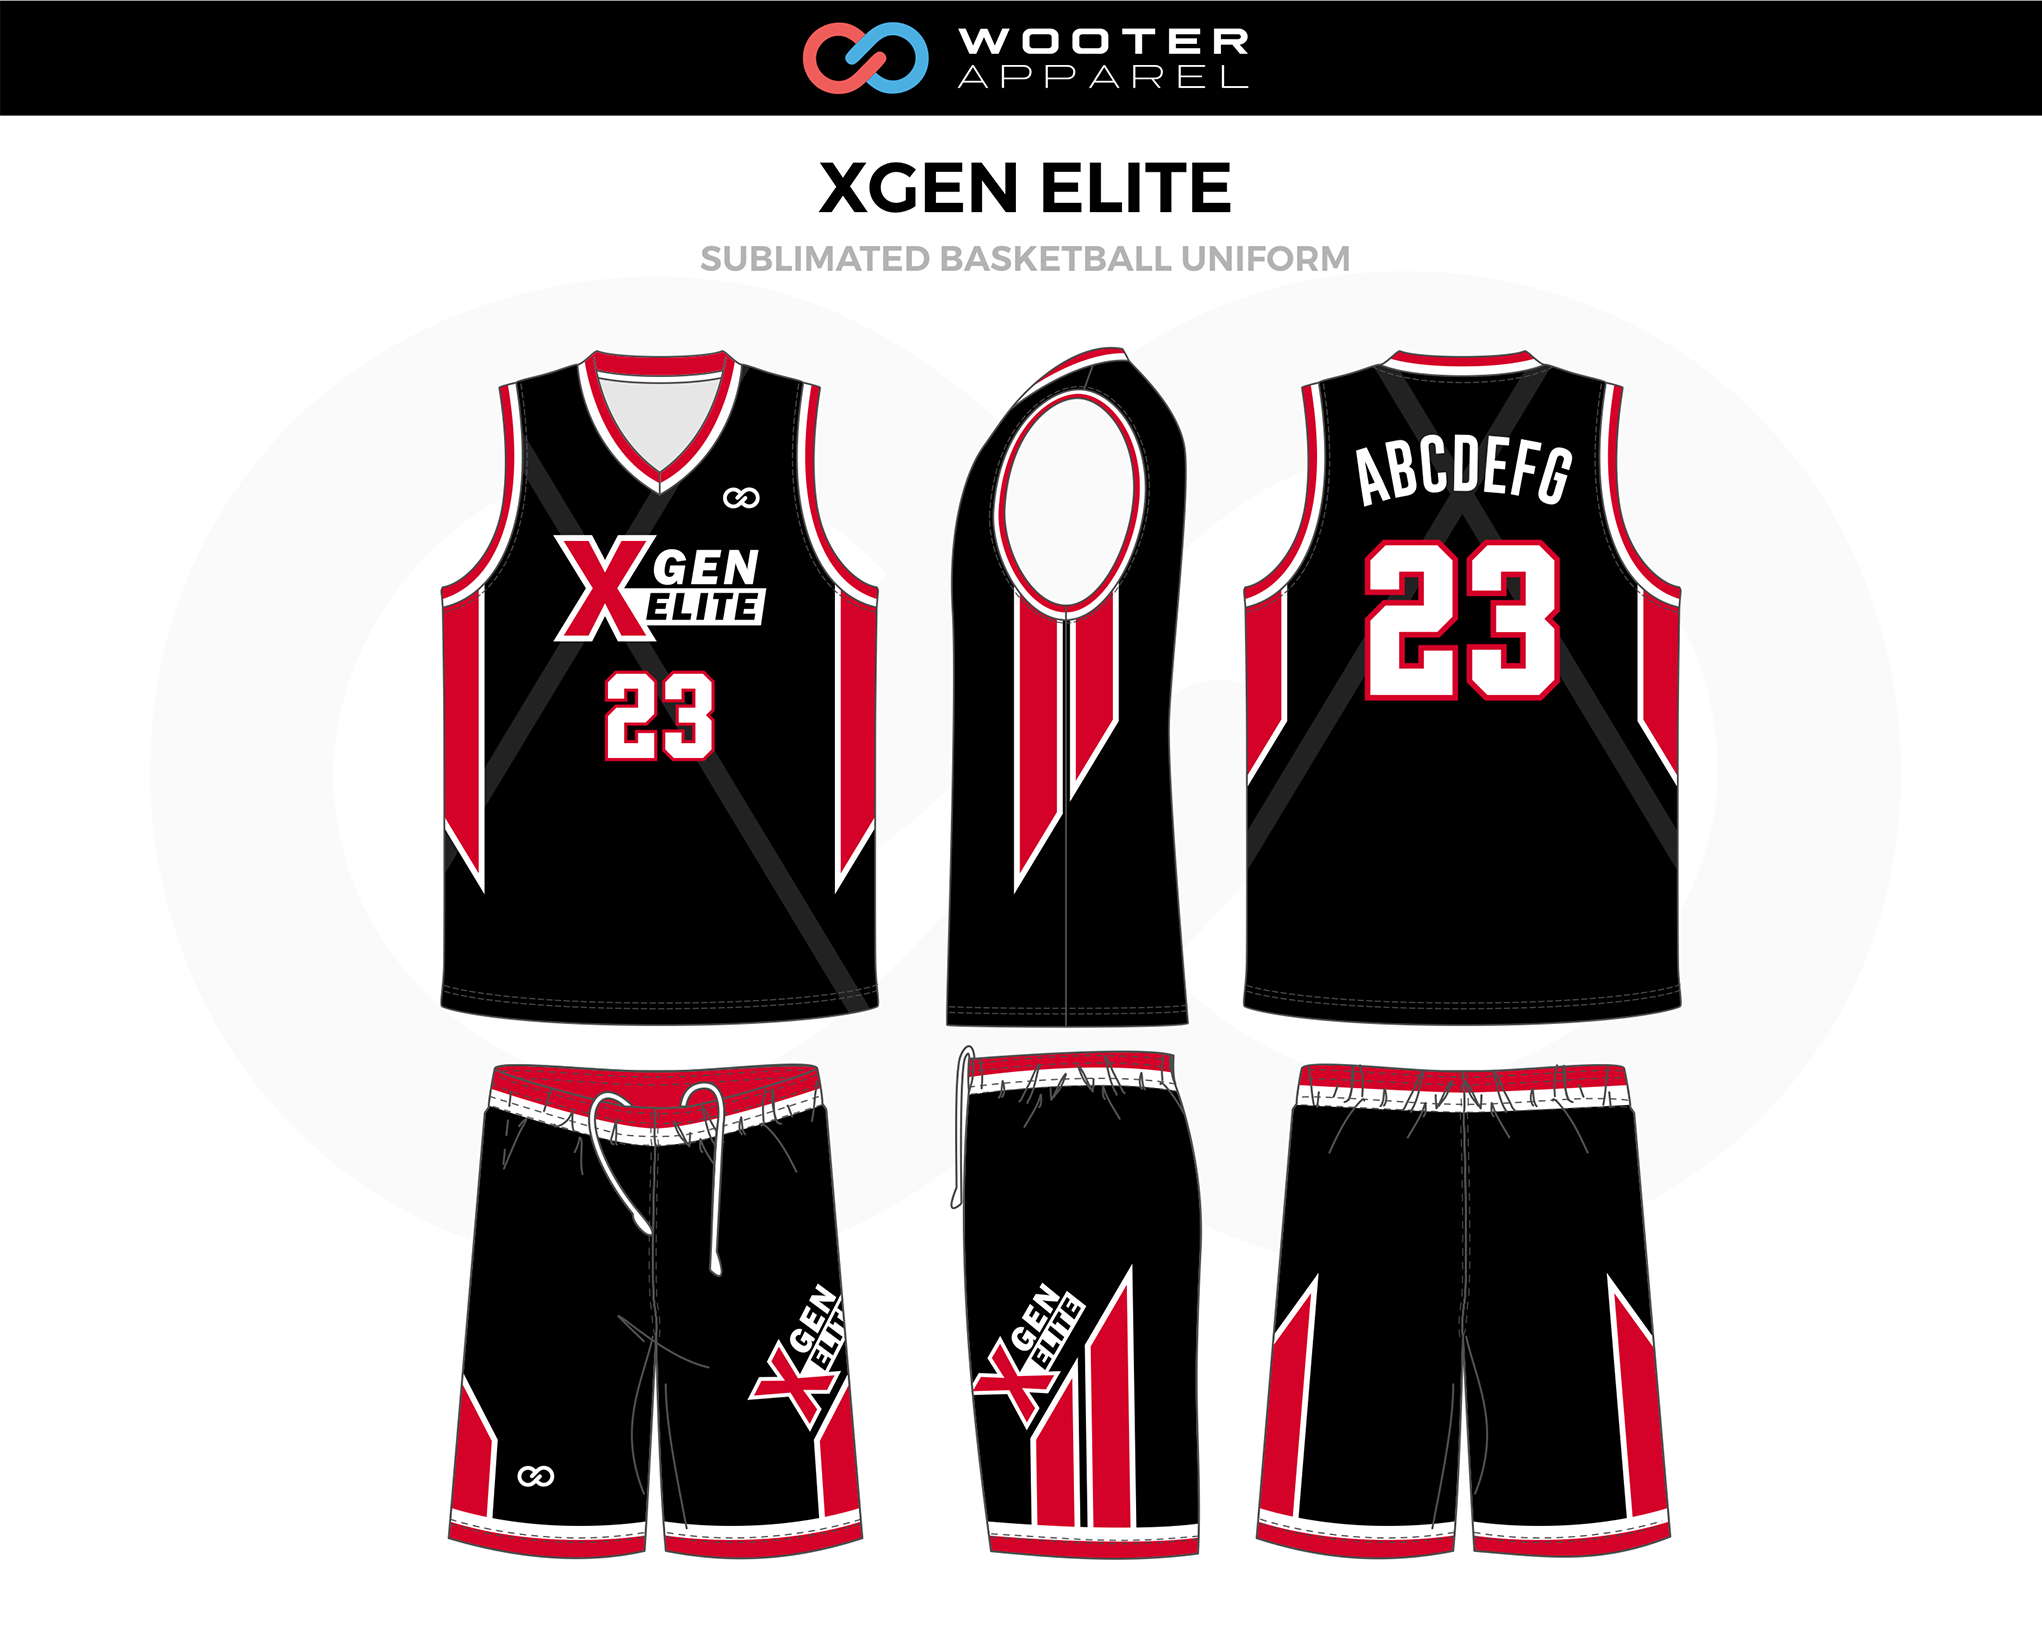 the latest dc497 f4561 Basketball Uniform Designs — Wooter Apparel | Team Uniforms ...